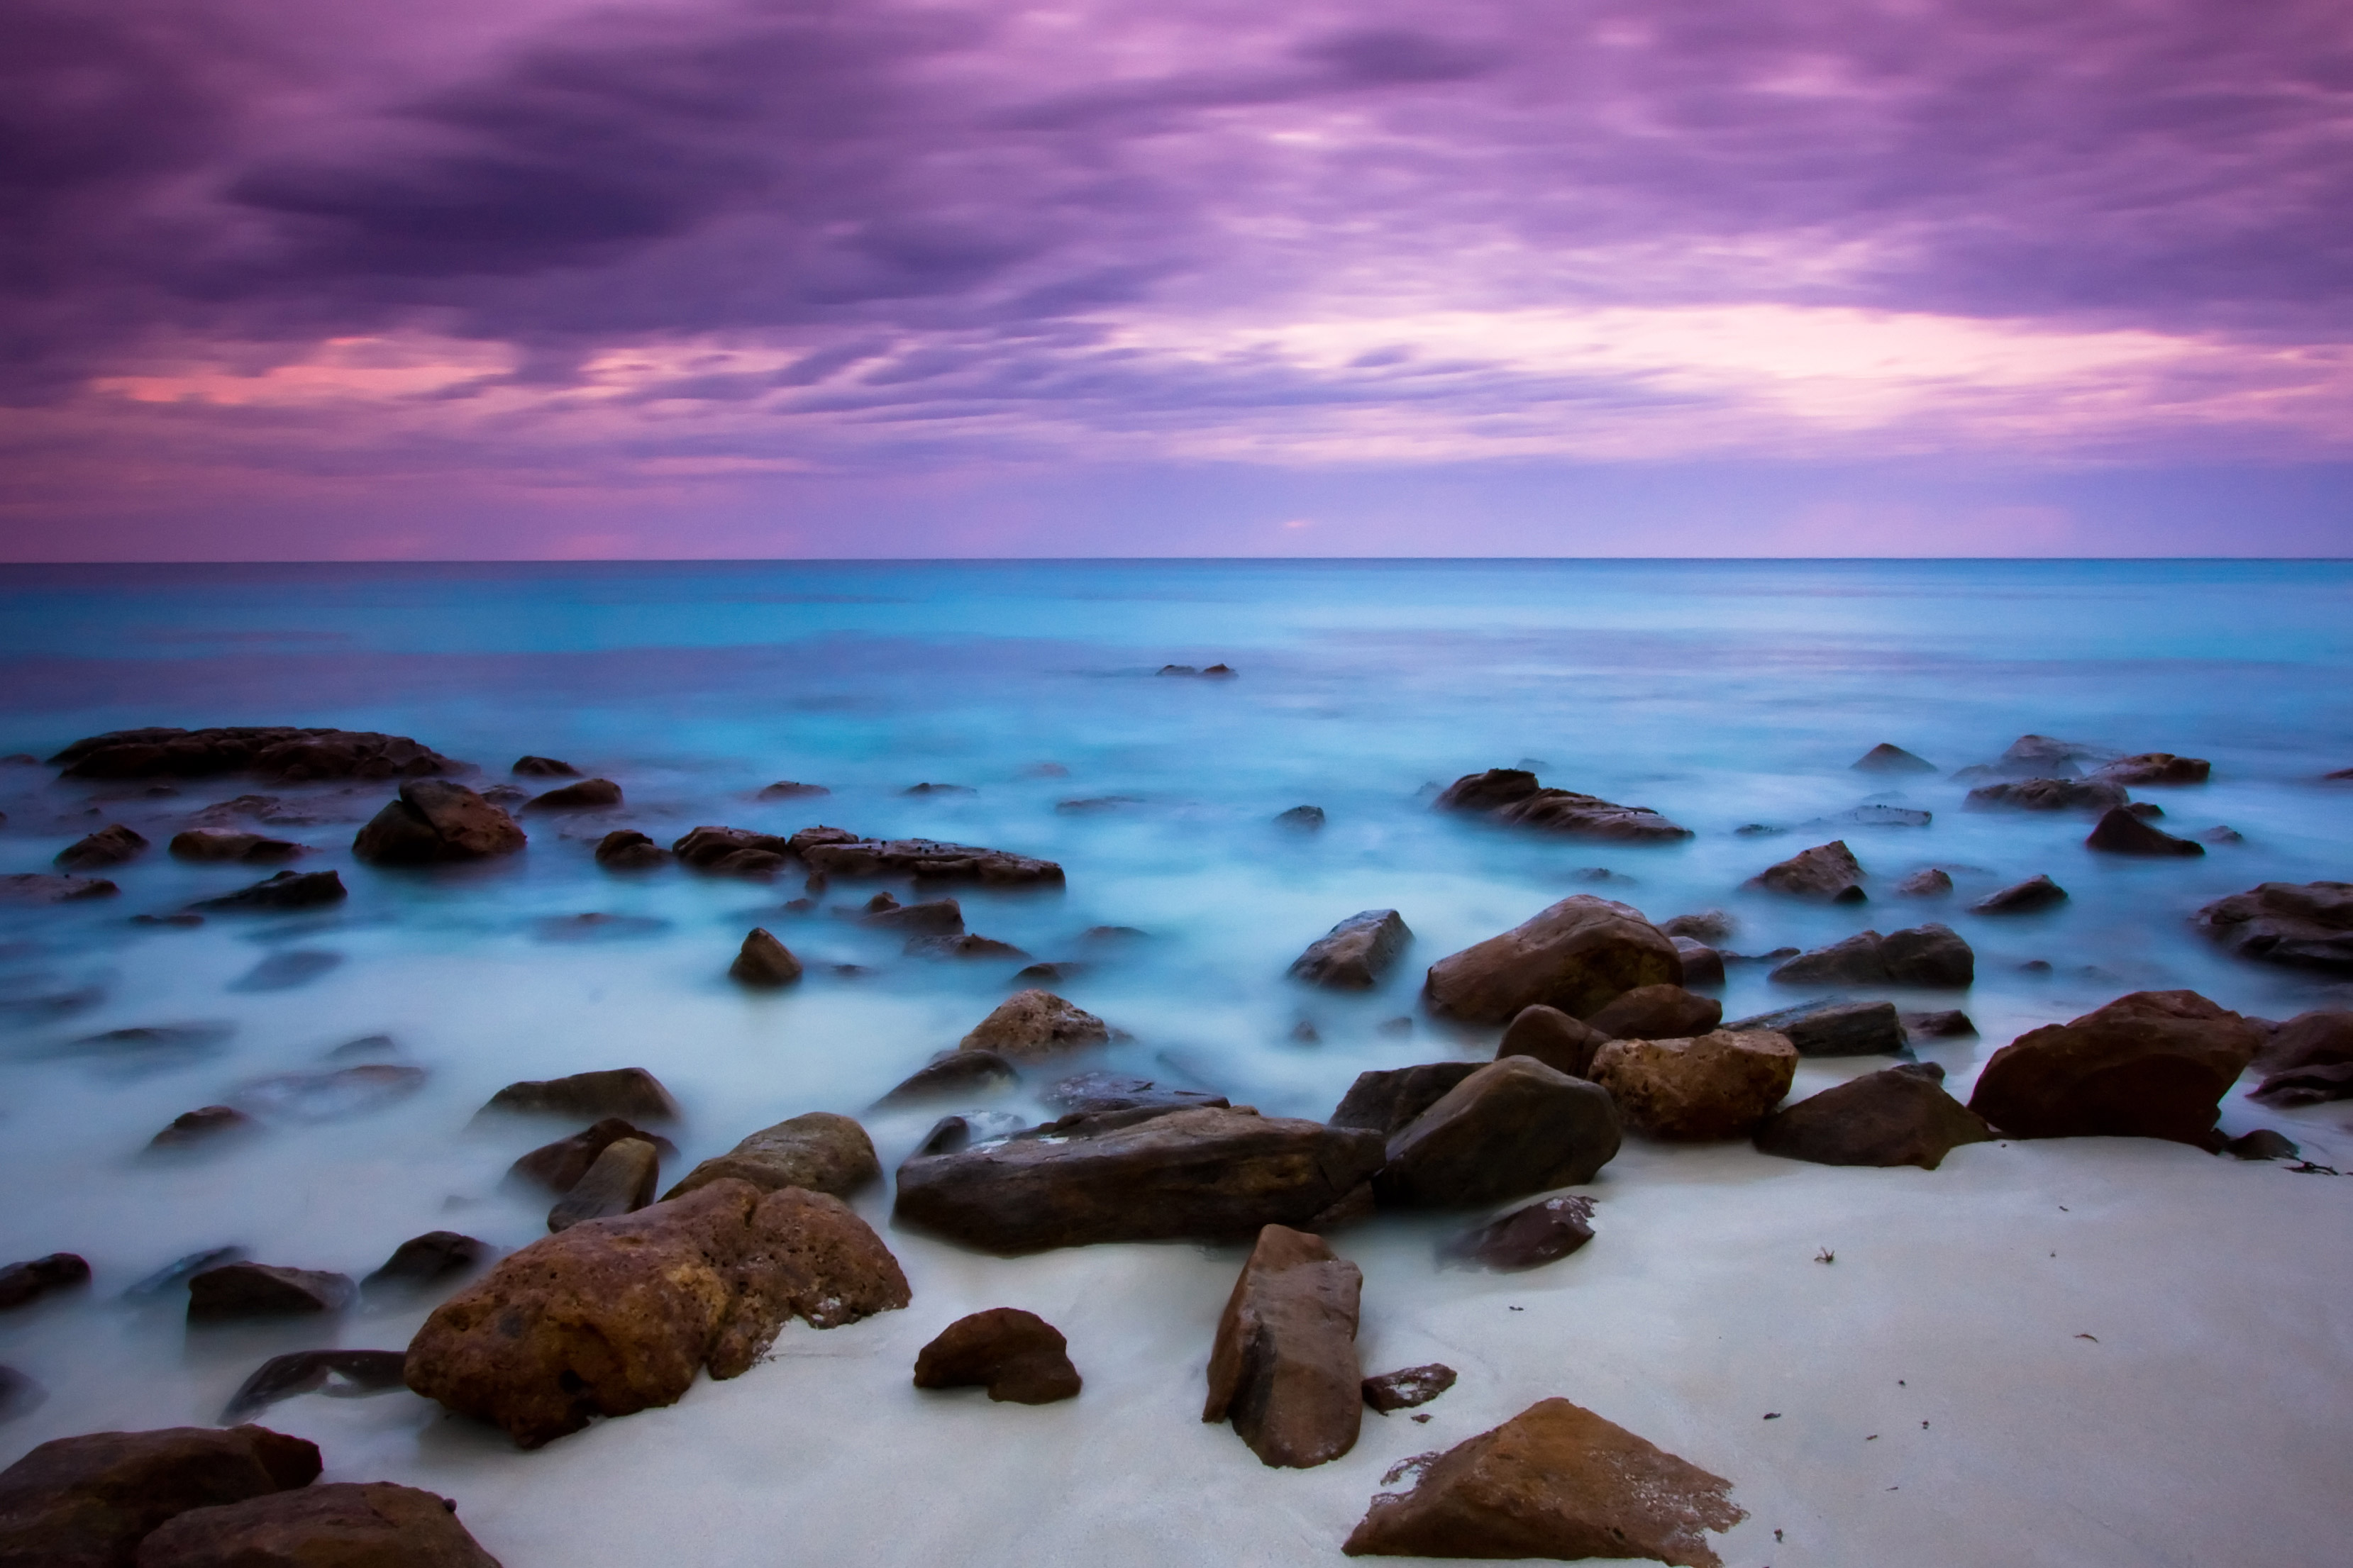 blue sea and purple sky hd nature 4k wallpapers images